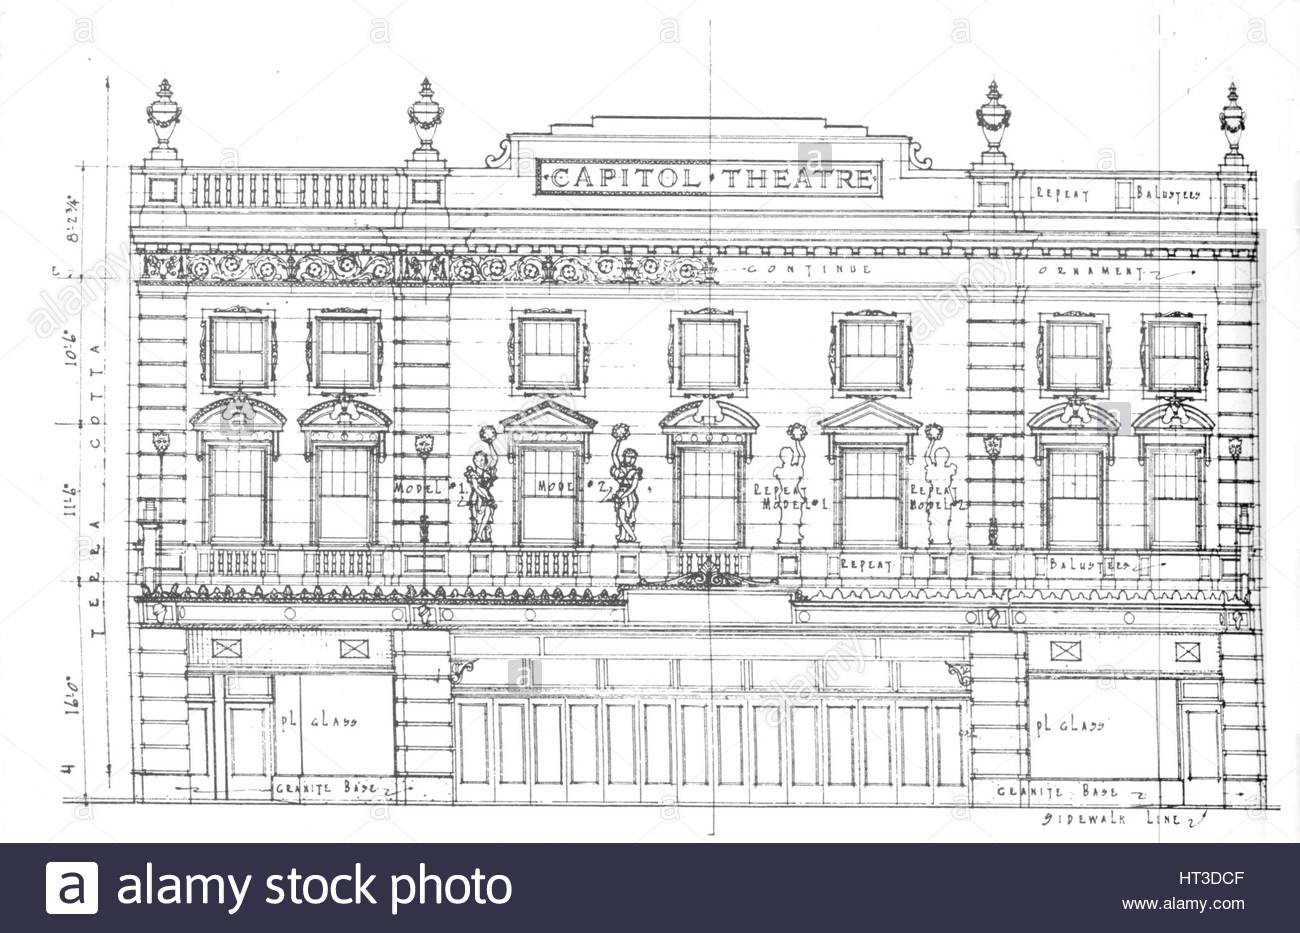 1300x933 Detail Drawing, Front Elevation, Capitol Theatre, Chicago